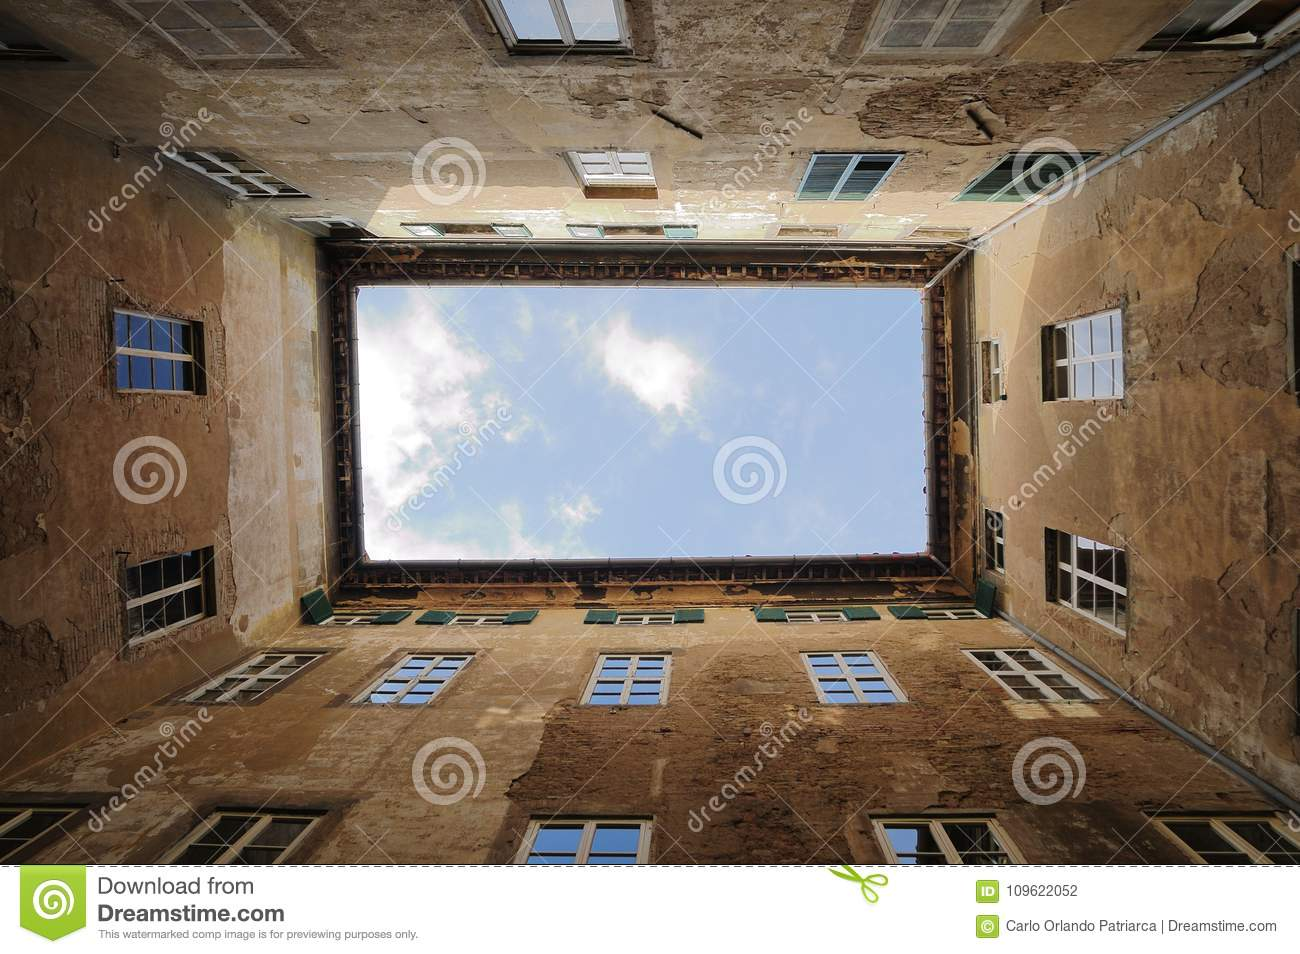 Palace courtyard in Cortona, Tuscany Italy. Vertical and perspective photo of the ancient exterior walls with cloudy sky